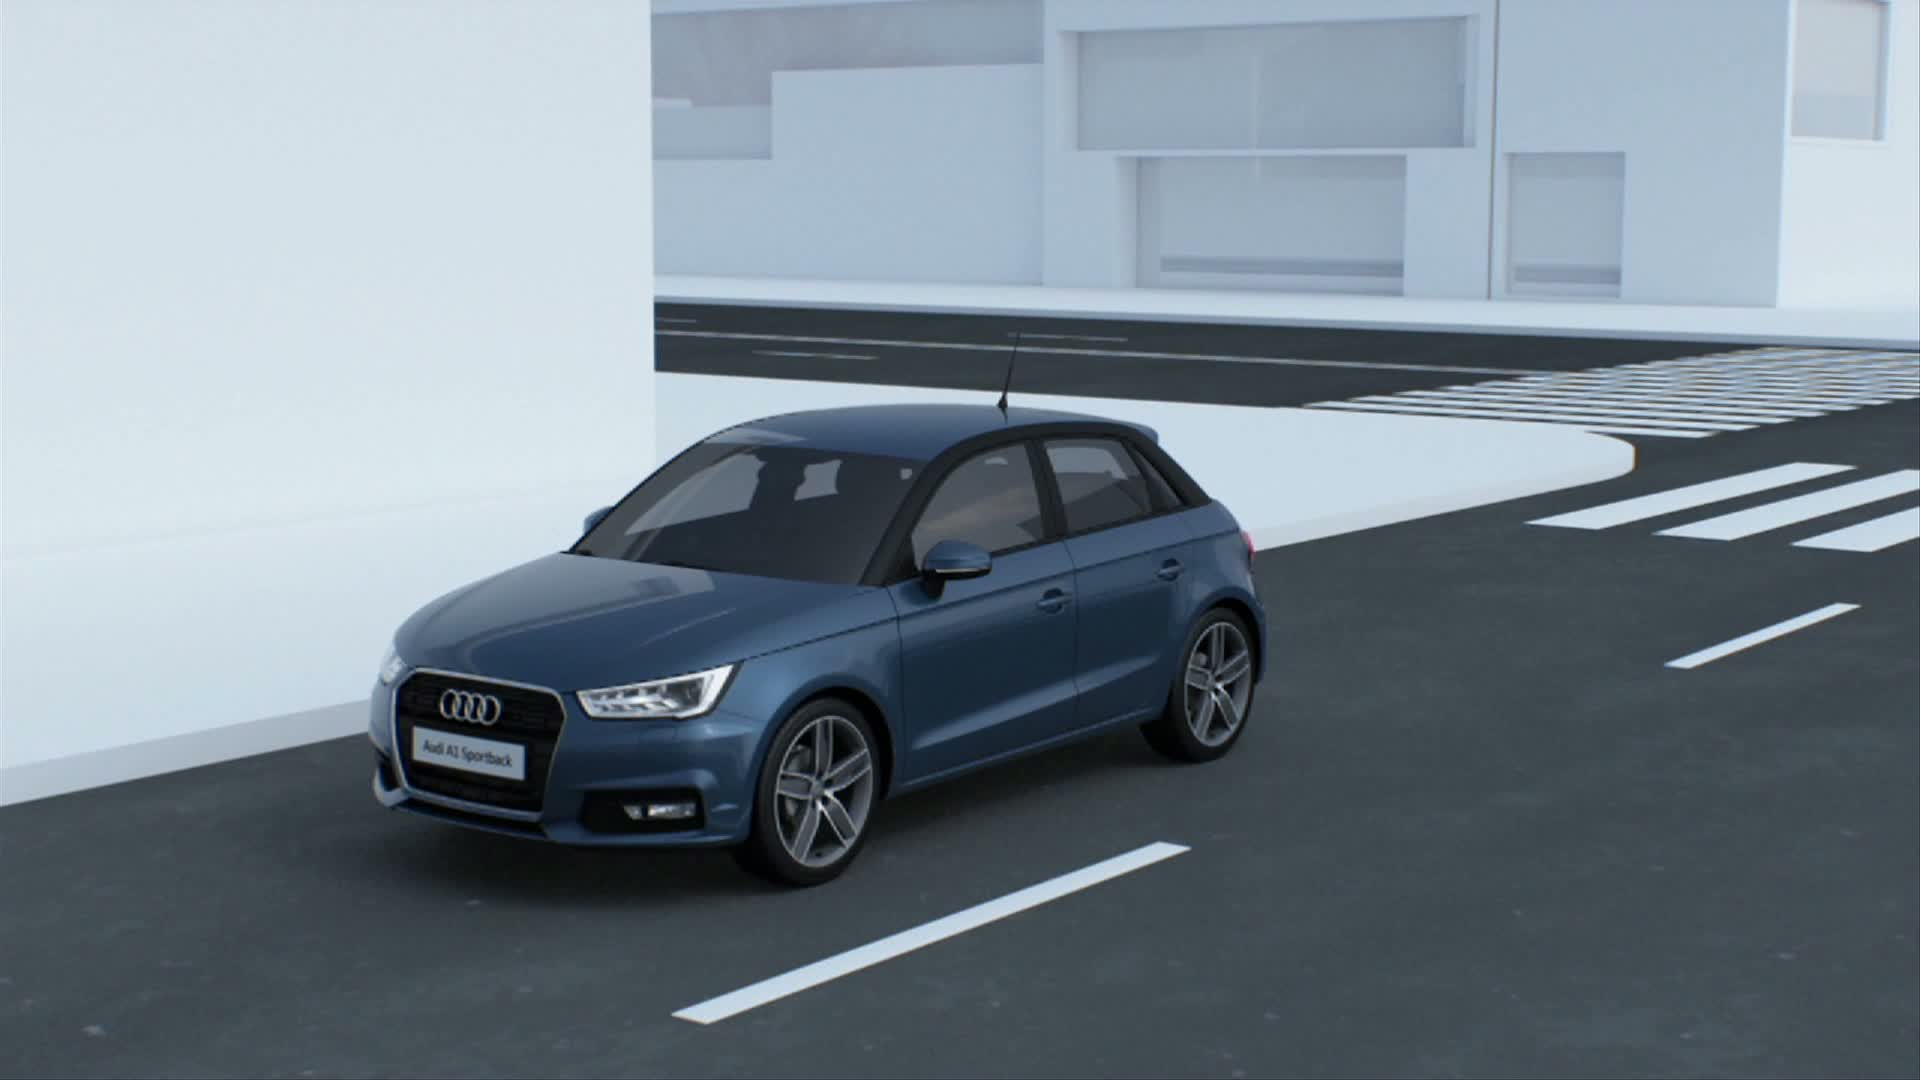 The new Audi A1 Sportback - Animation